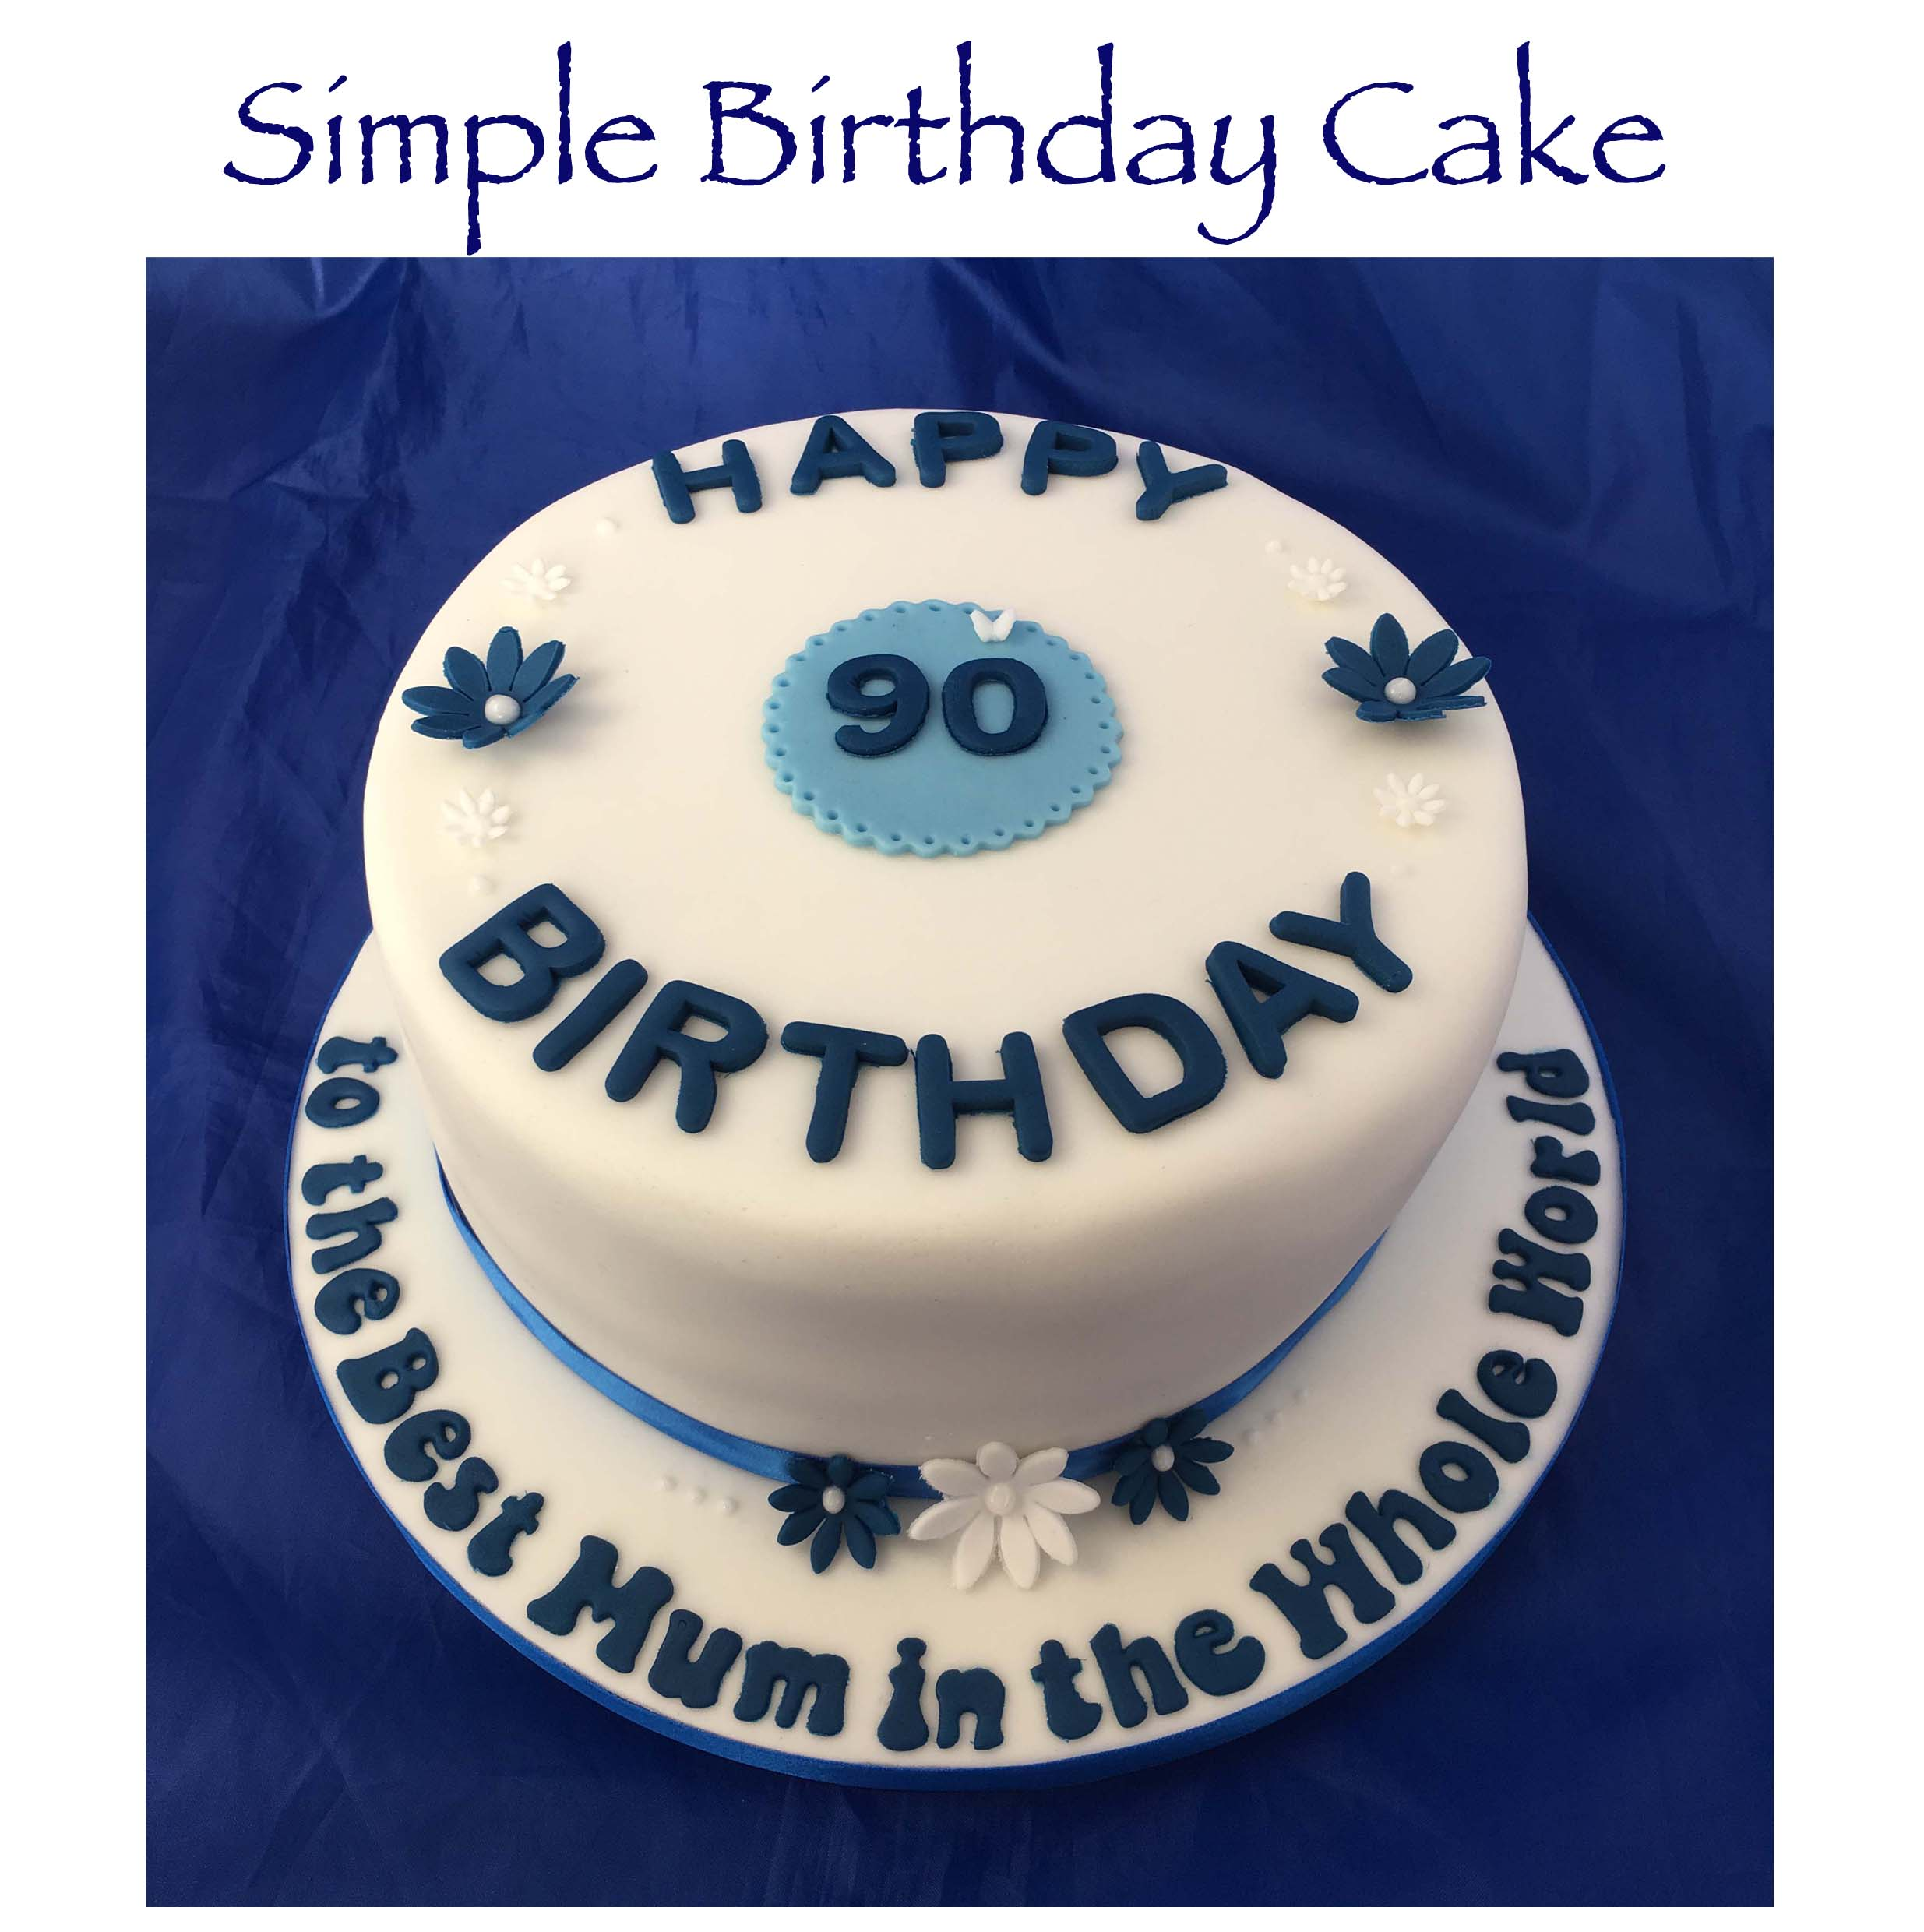 Simple Birthday Cake